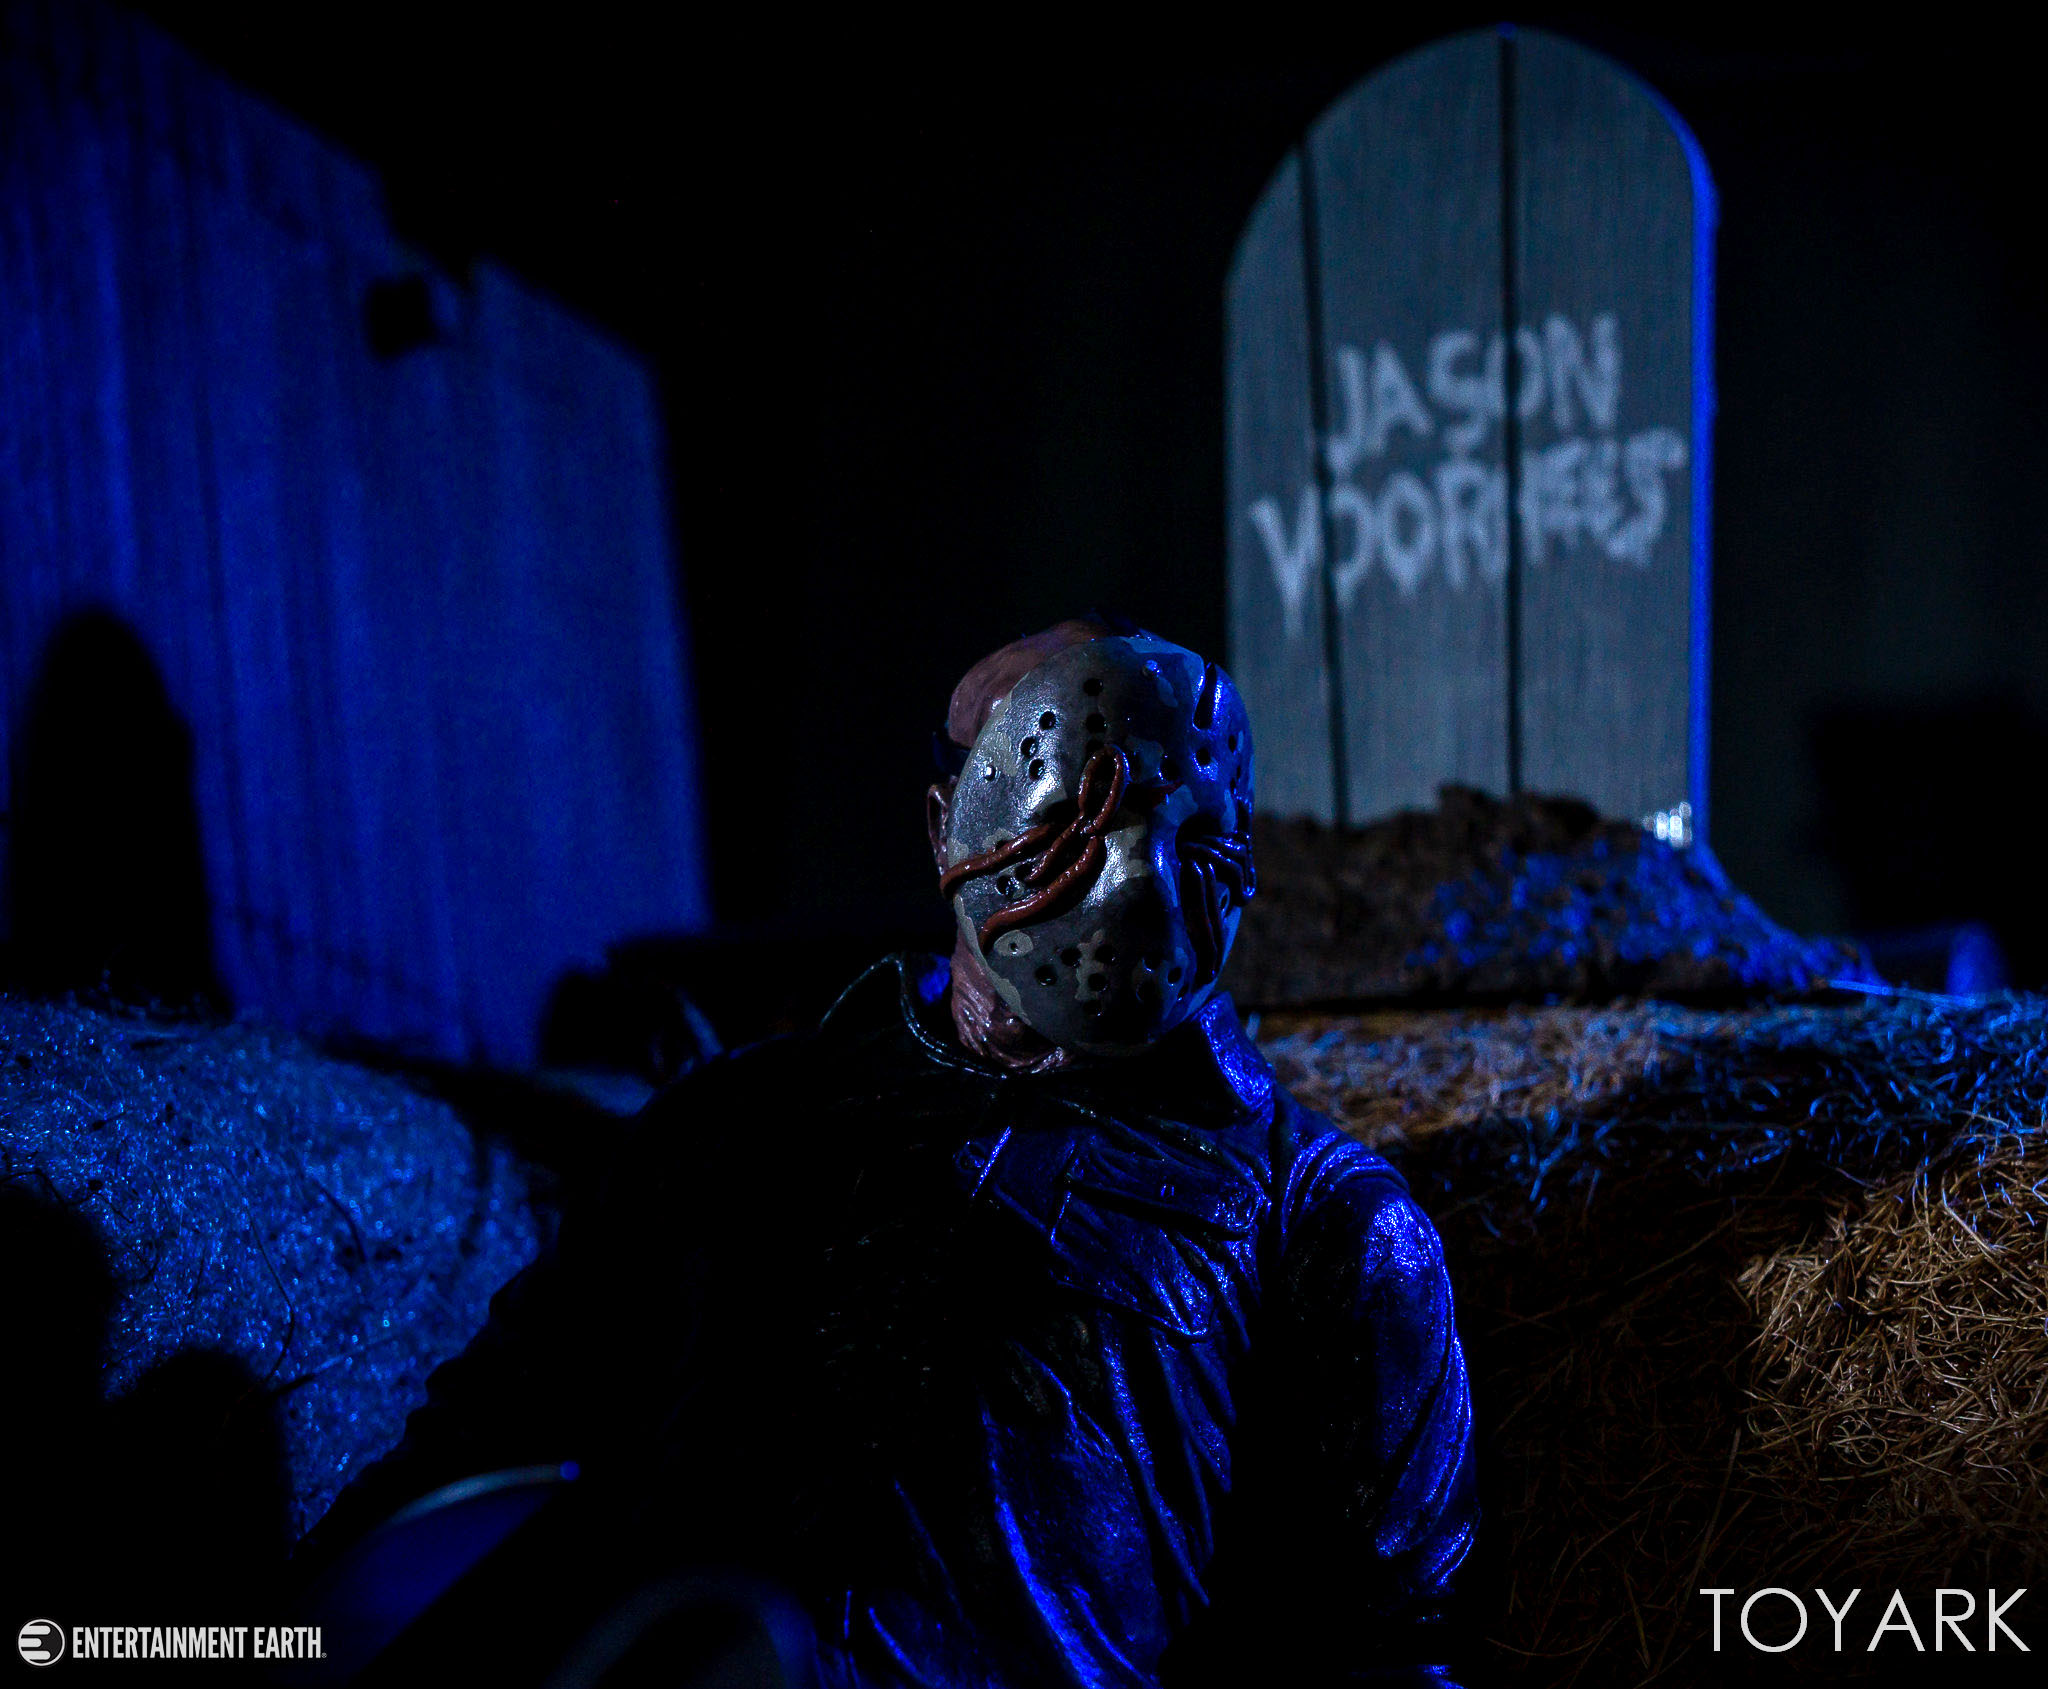 https://news.toyark.com/wp-content/uploads/sites/4/2018/10/NECA-Ultimate-Dream-Jason-027.jpg